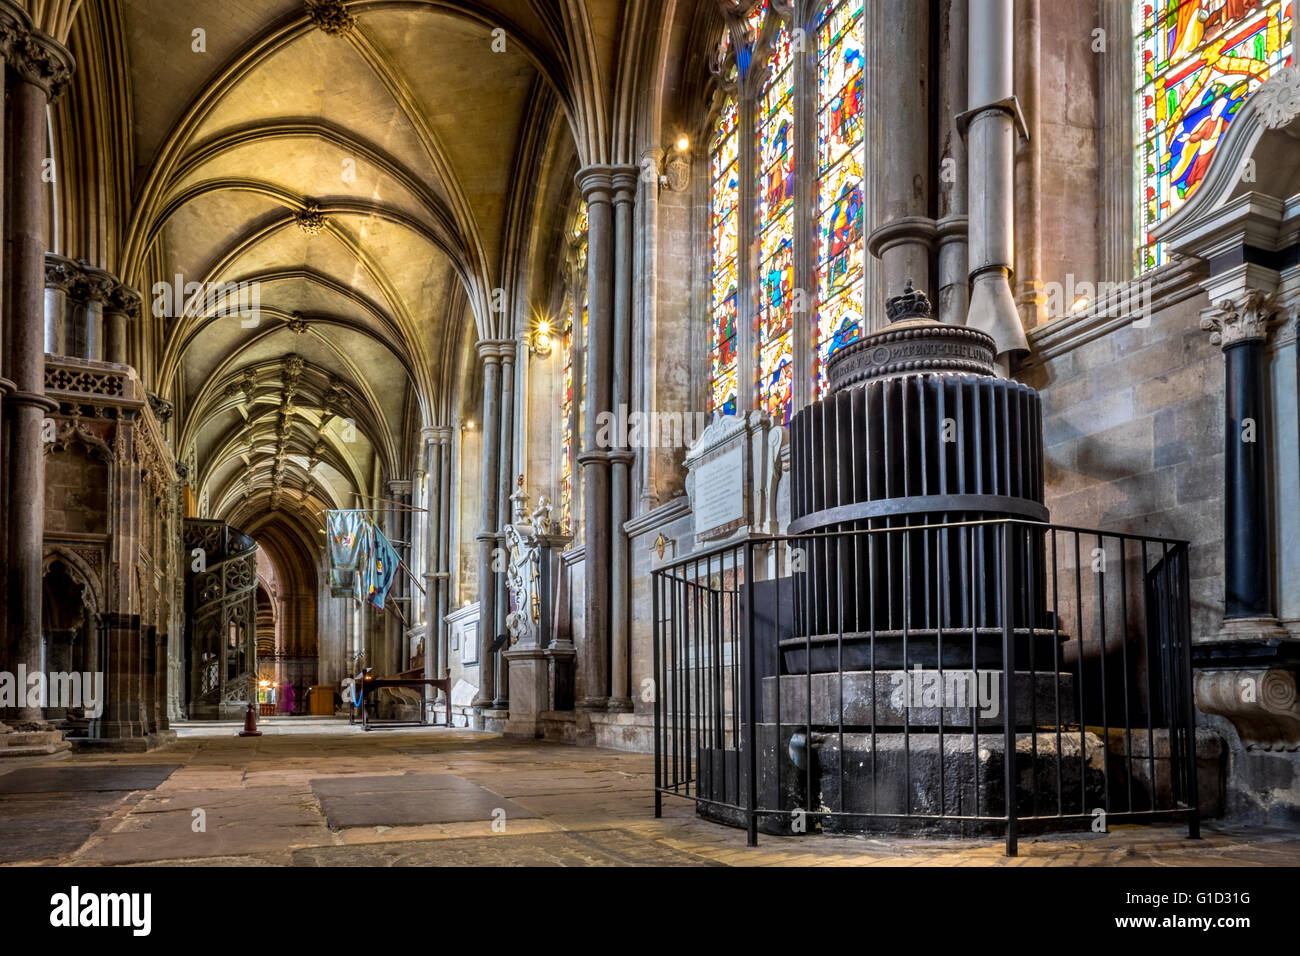 Ely Cathedral interior heating radiator. - Stock Image